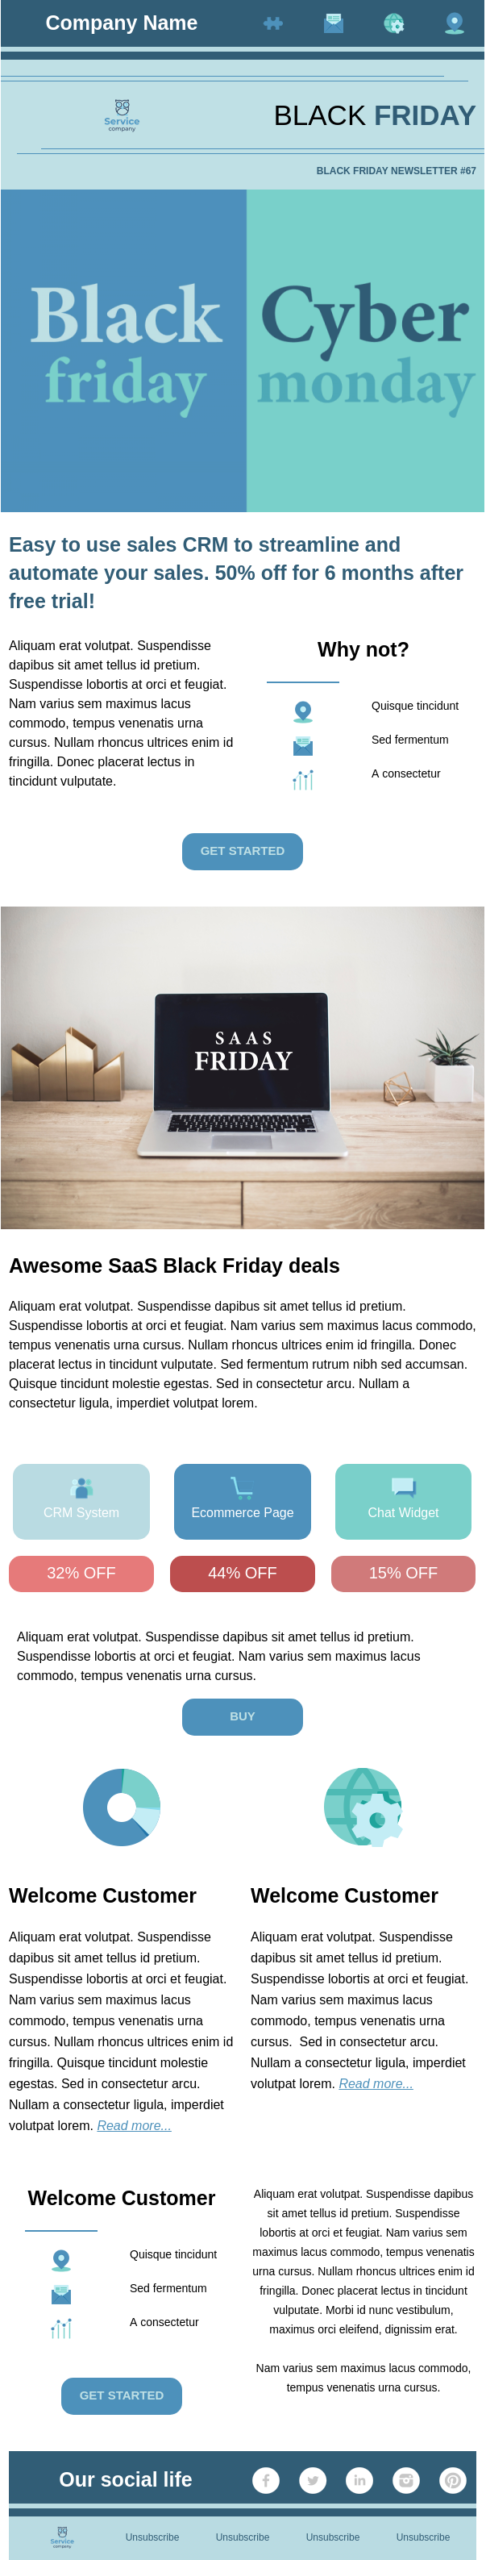 black friday email template, Black Friday & Cyber Monday Email Templates